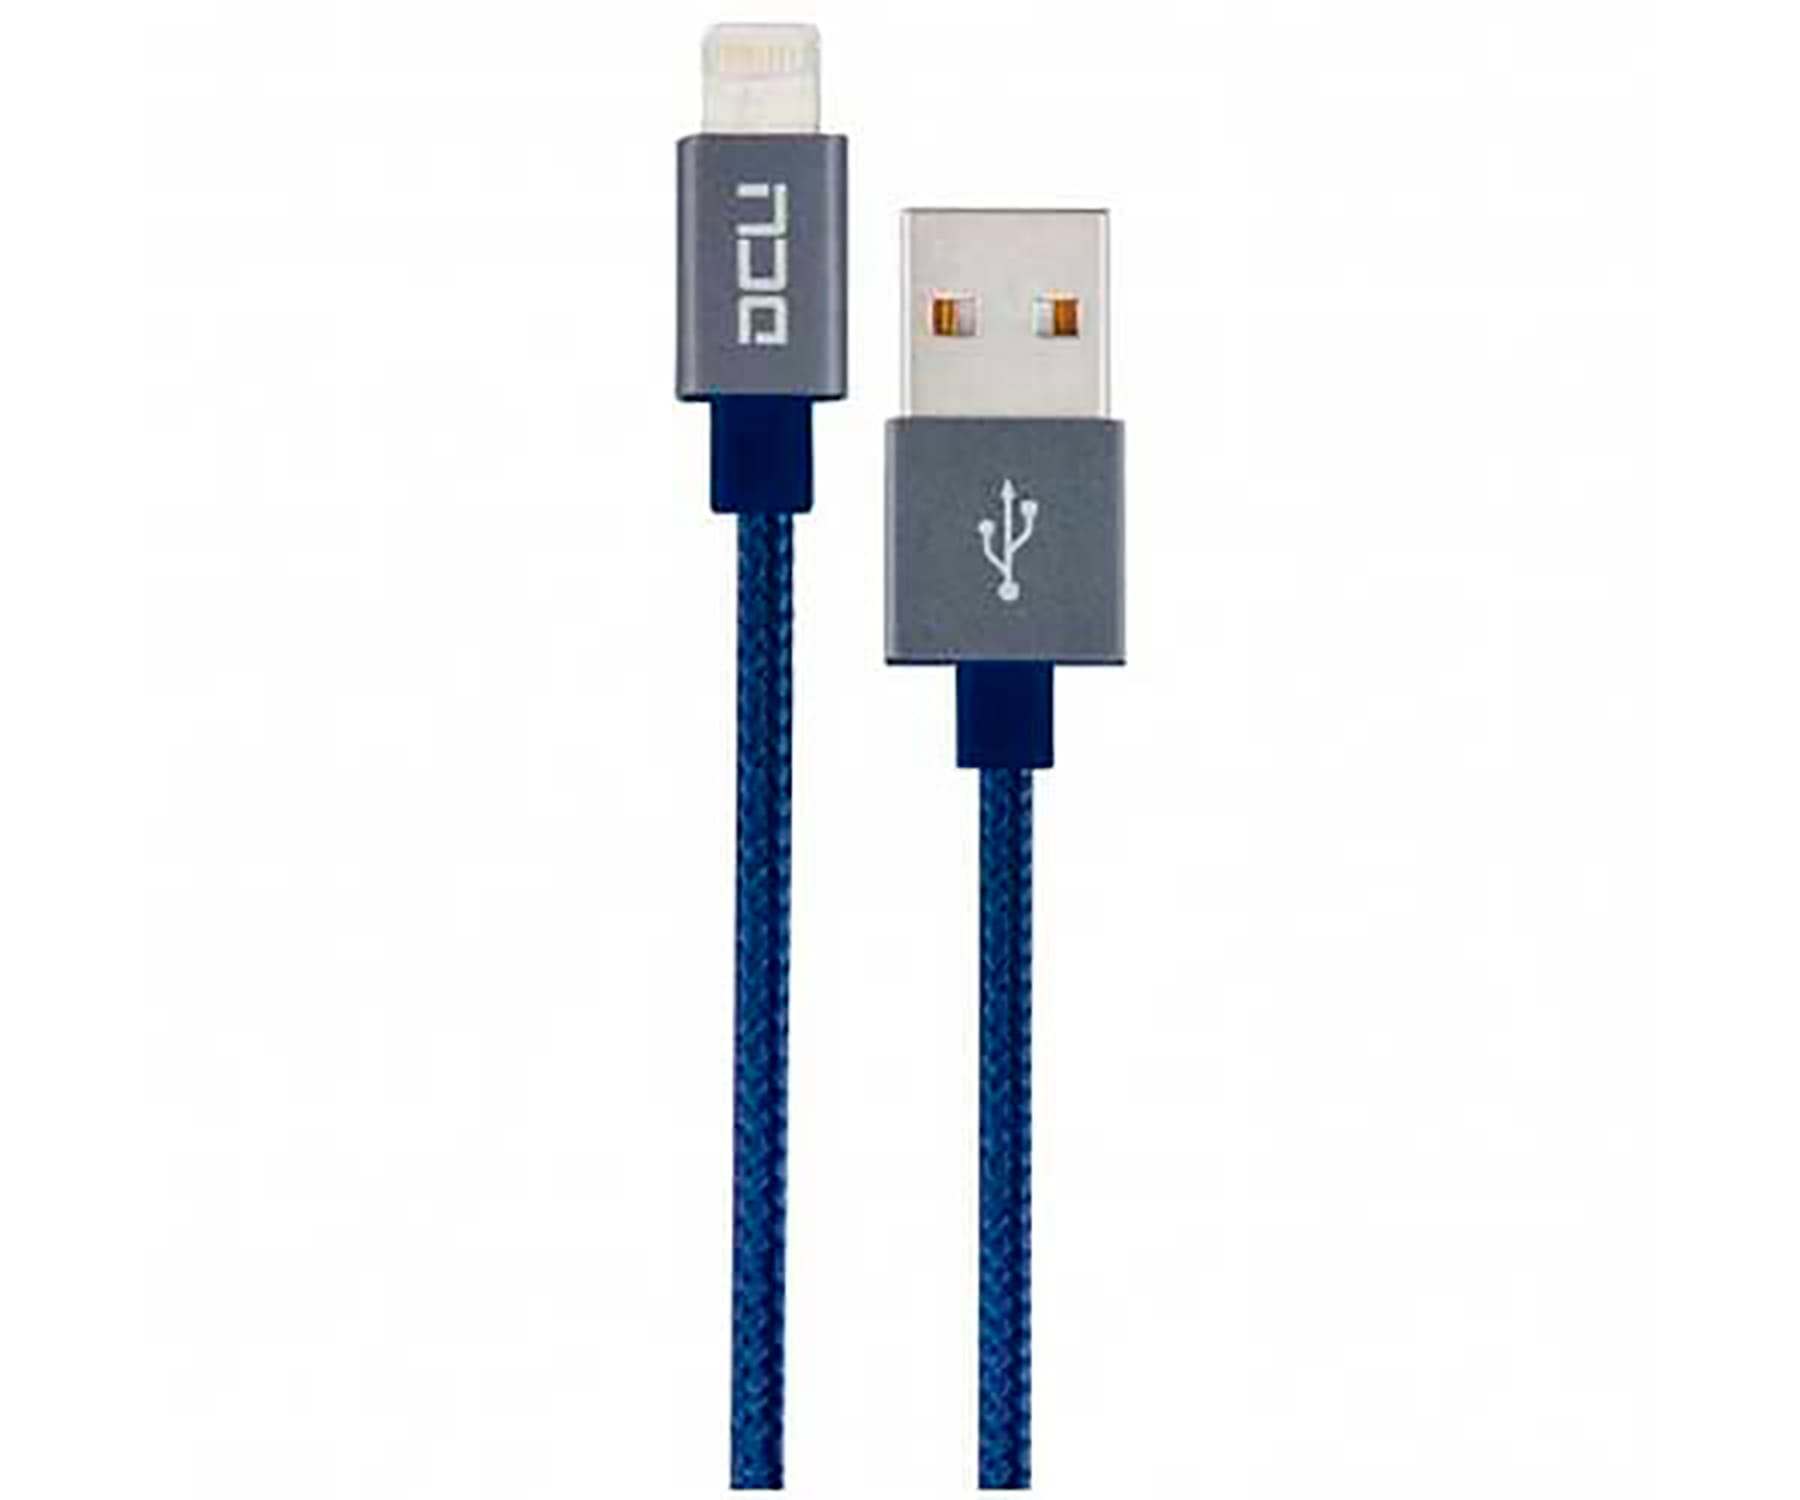 DCU CABLE AZUL LIGHTNING PARA IPHONE, IPAD E IPOD A USB 2 METROS